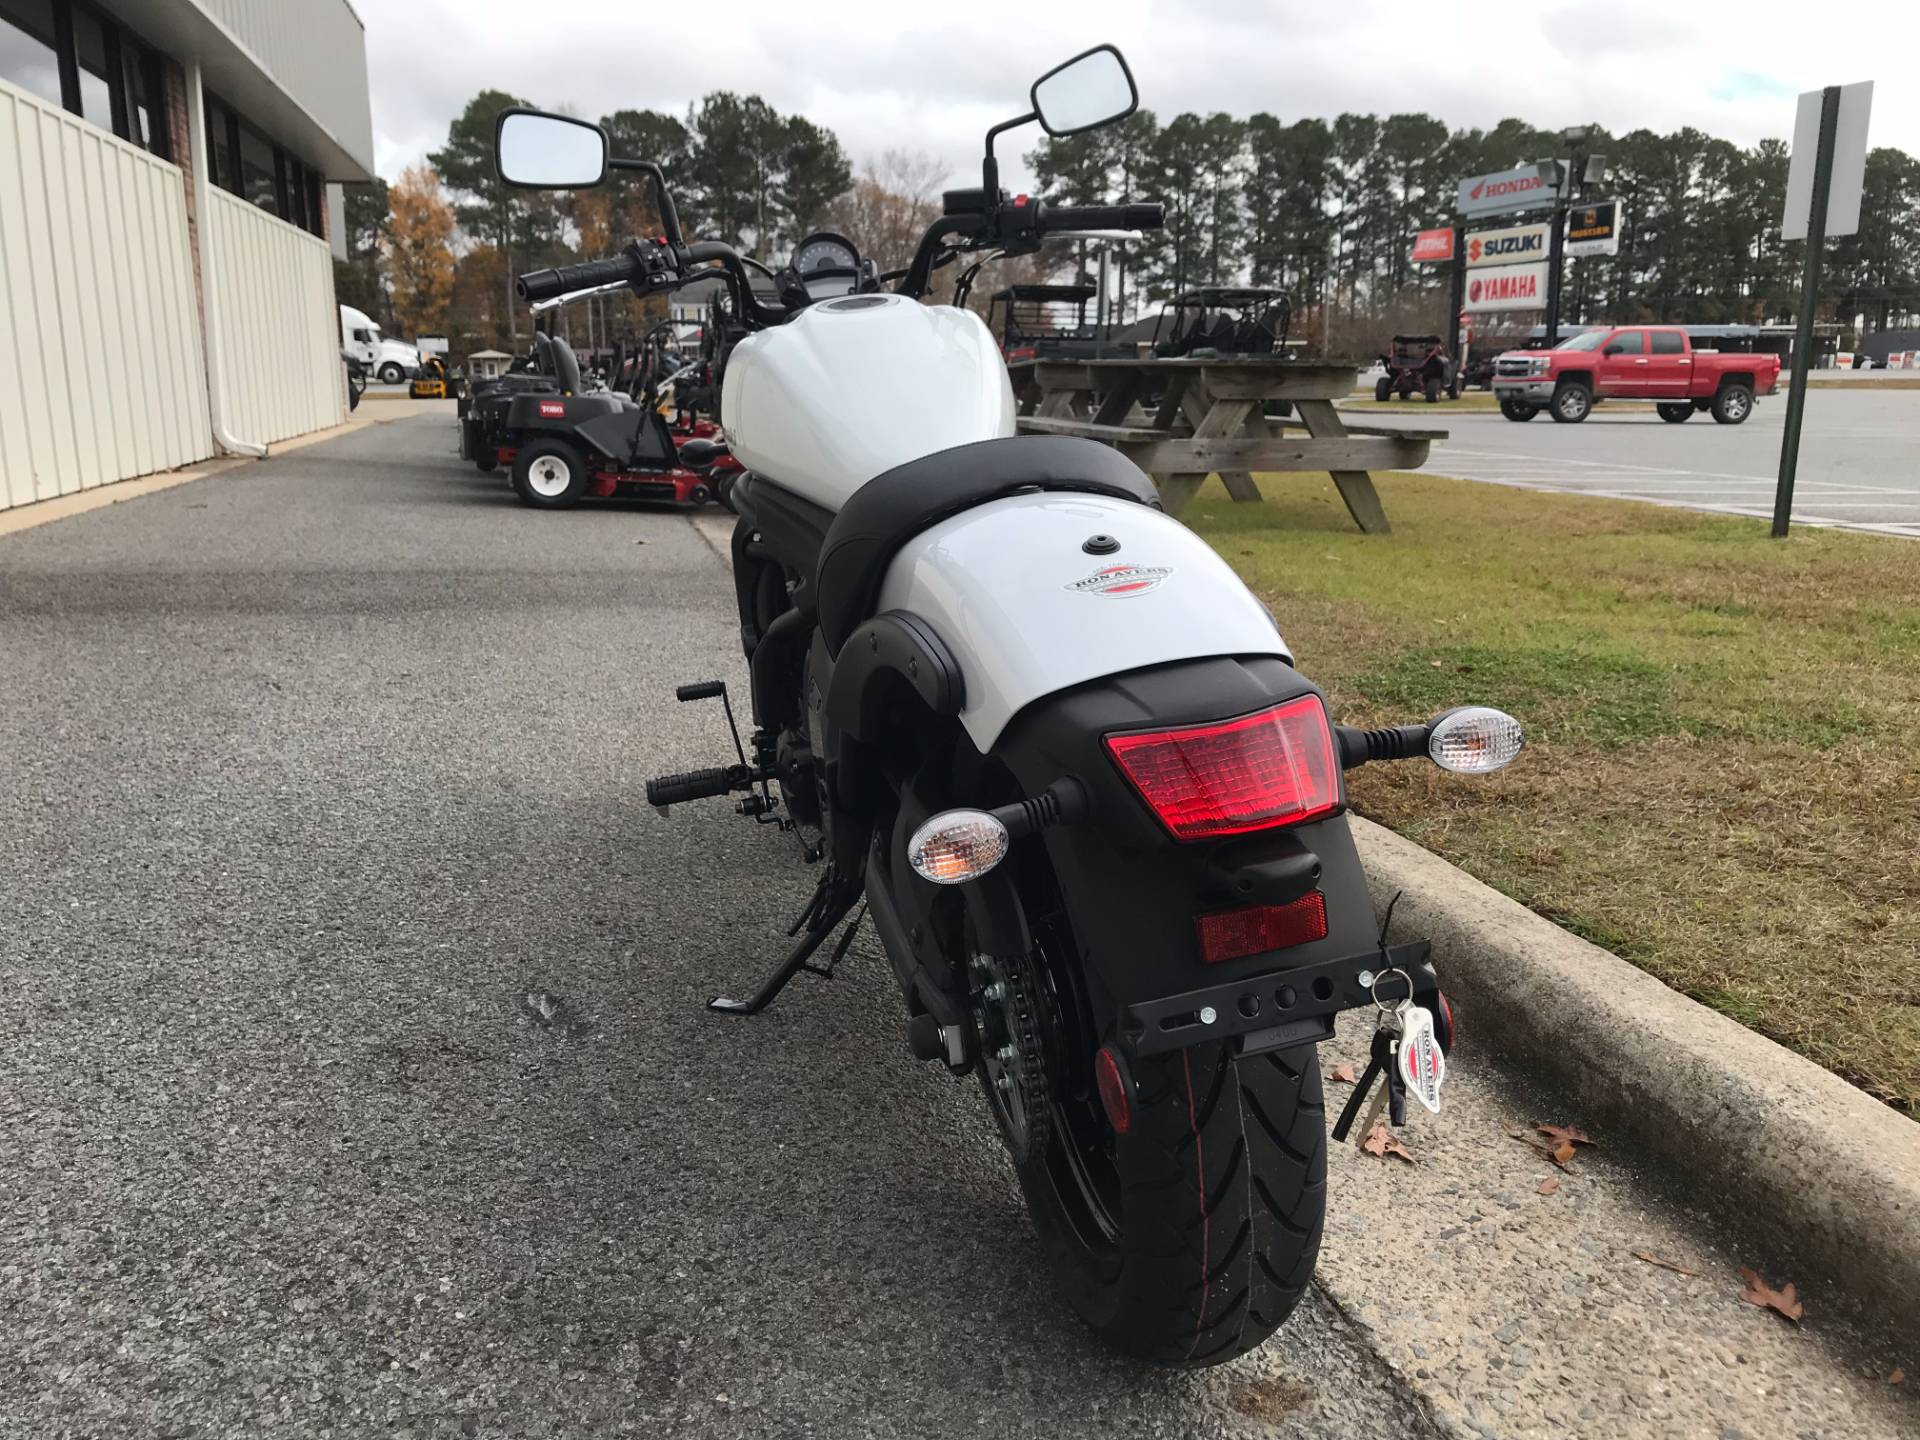 2018 Kawasaki Vulcan S ABS in Greenville, North Carolina